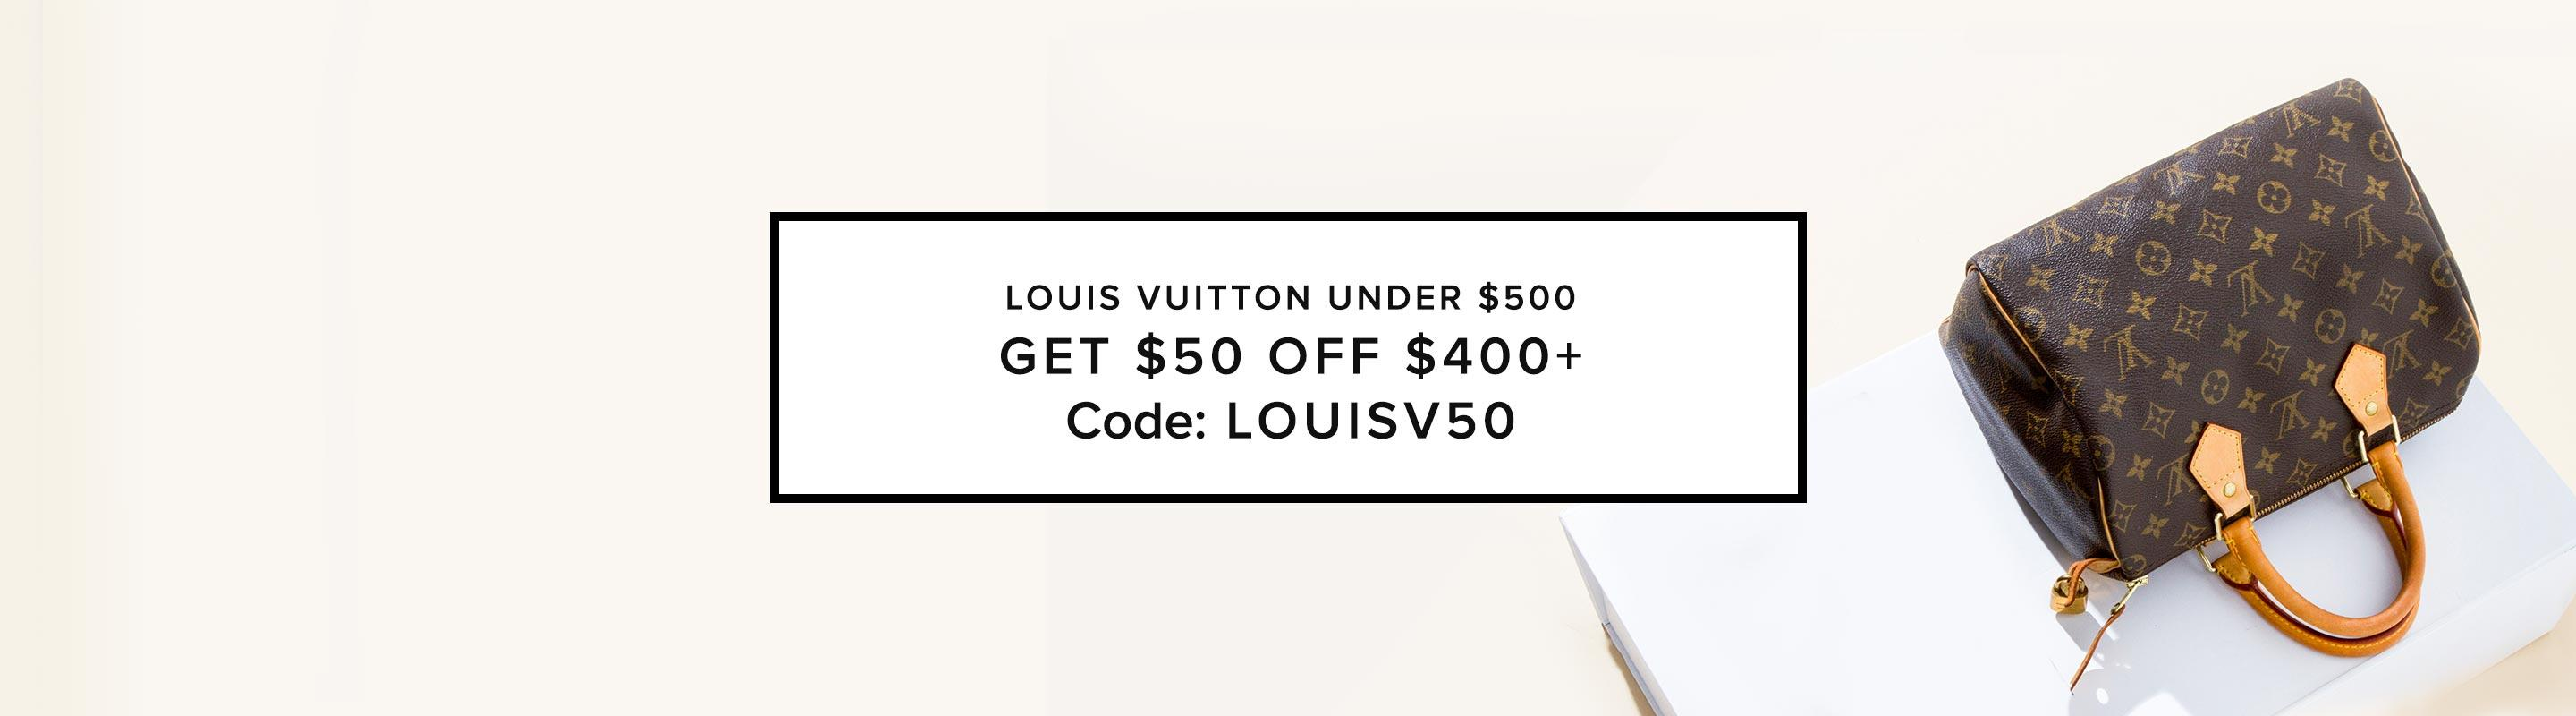 Louis Vuitton Under $500